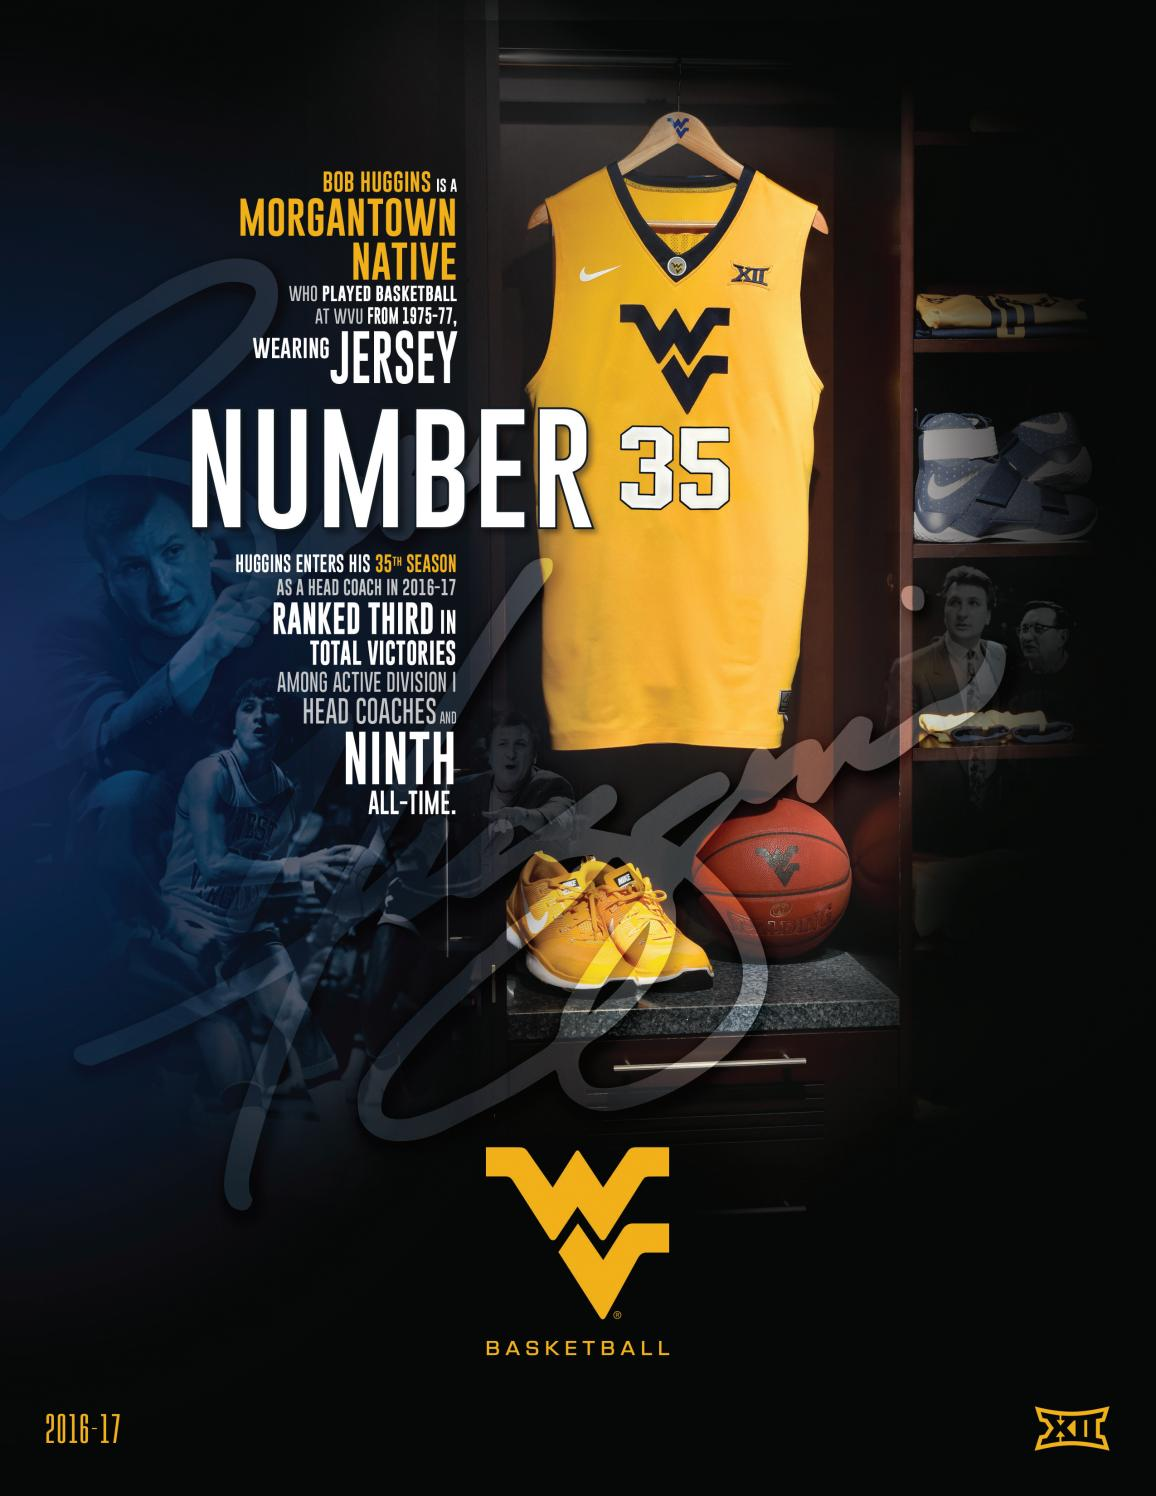 2016-17 WVU Men s Basketball Guide by Joe Swan - issuu d3019d033